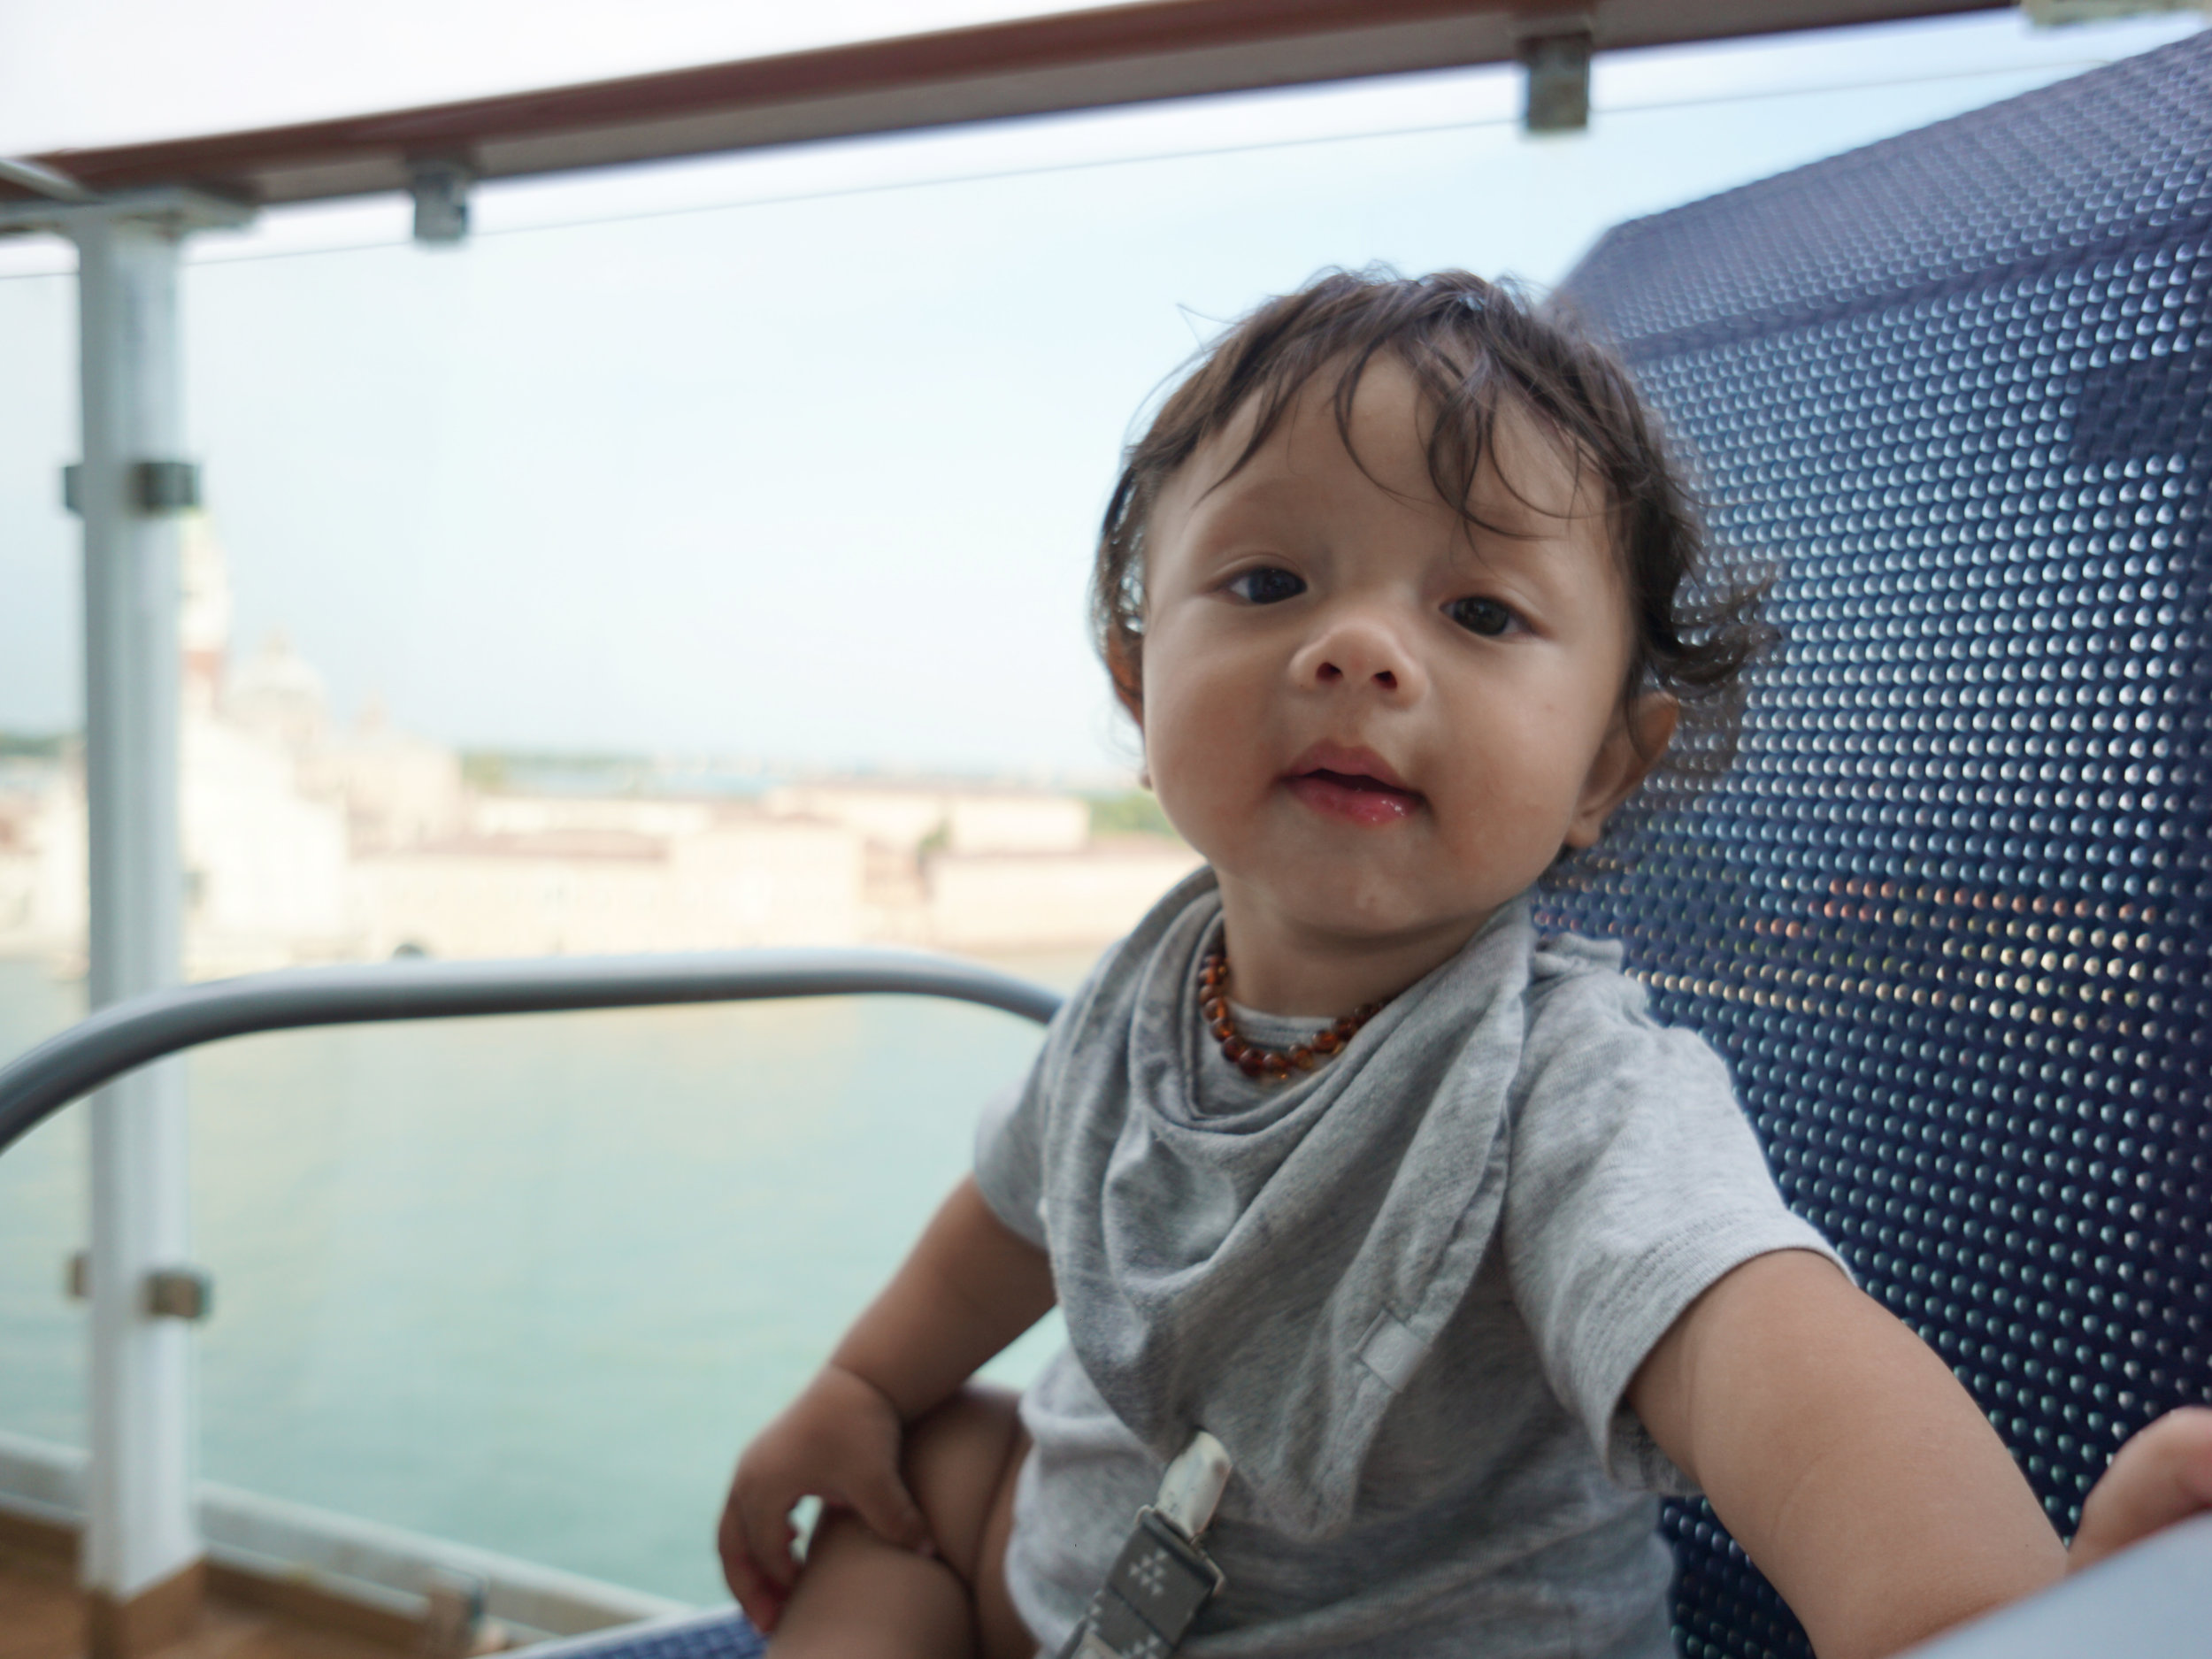 Orlo (7 months old) cruising out of Venice